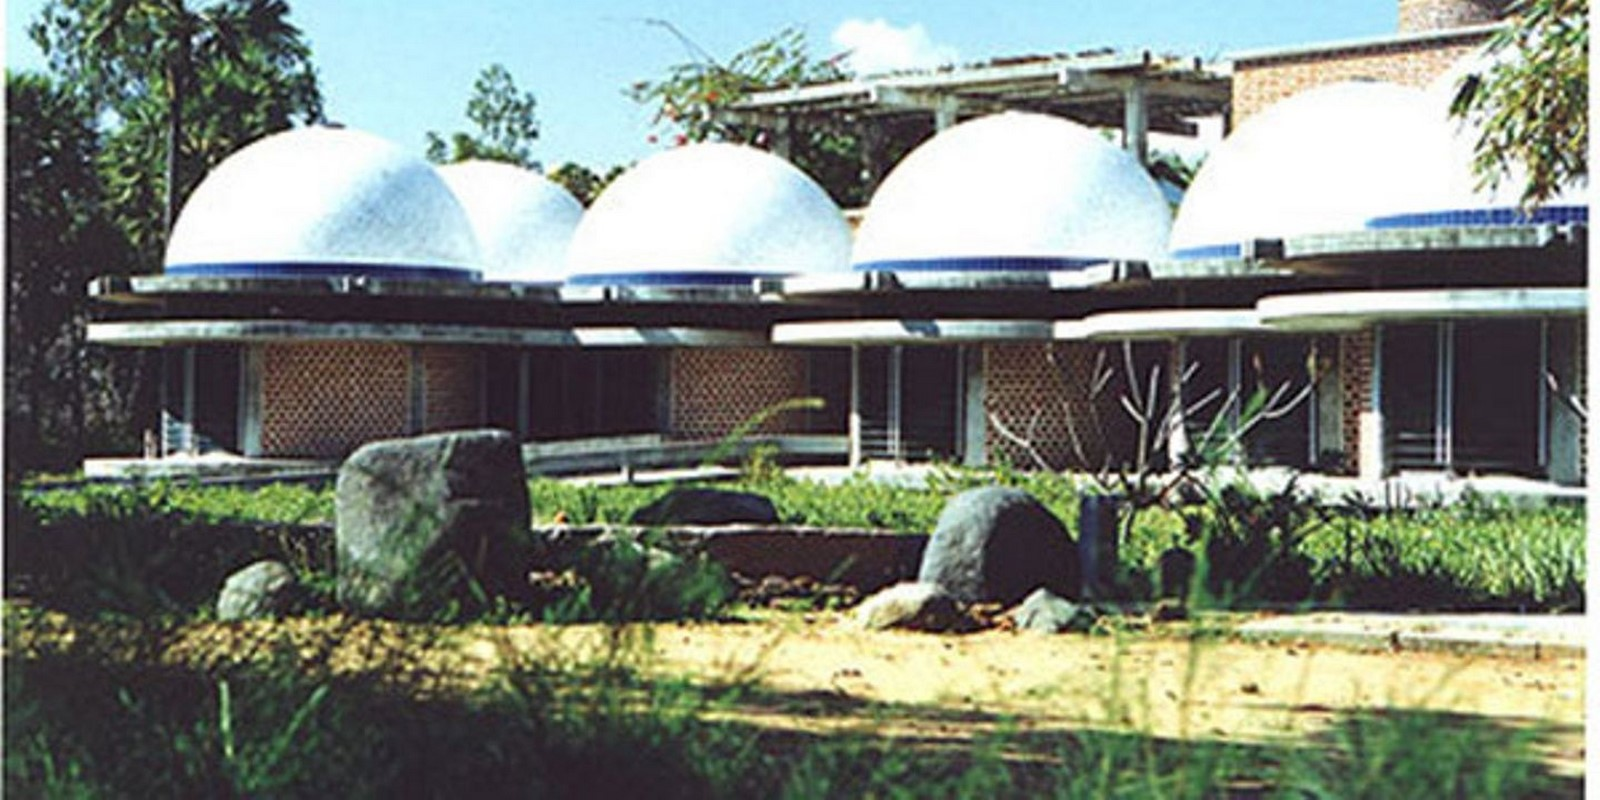 Poppo Pingel: Life, Works, and Philosophy behind Colonizing the Architecture of Auroville - Sheet6